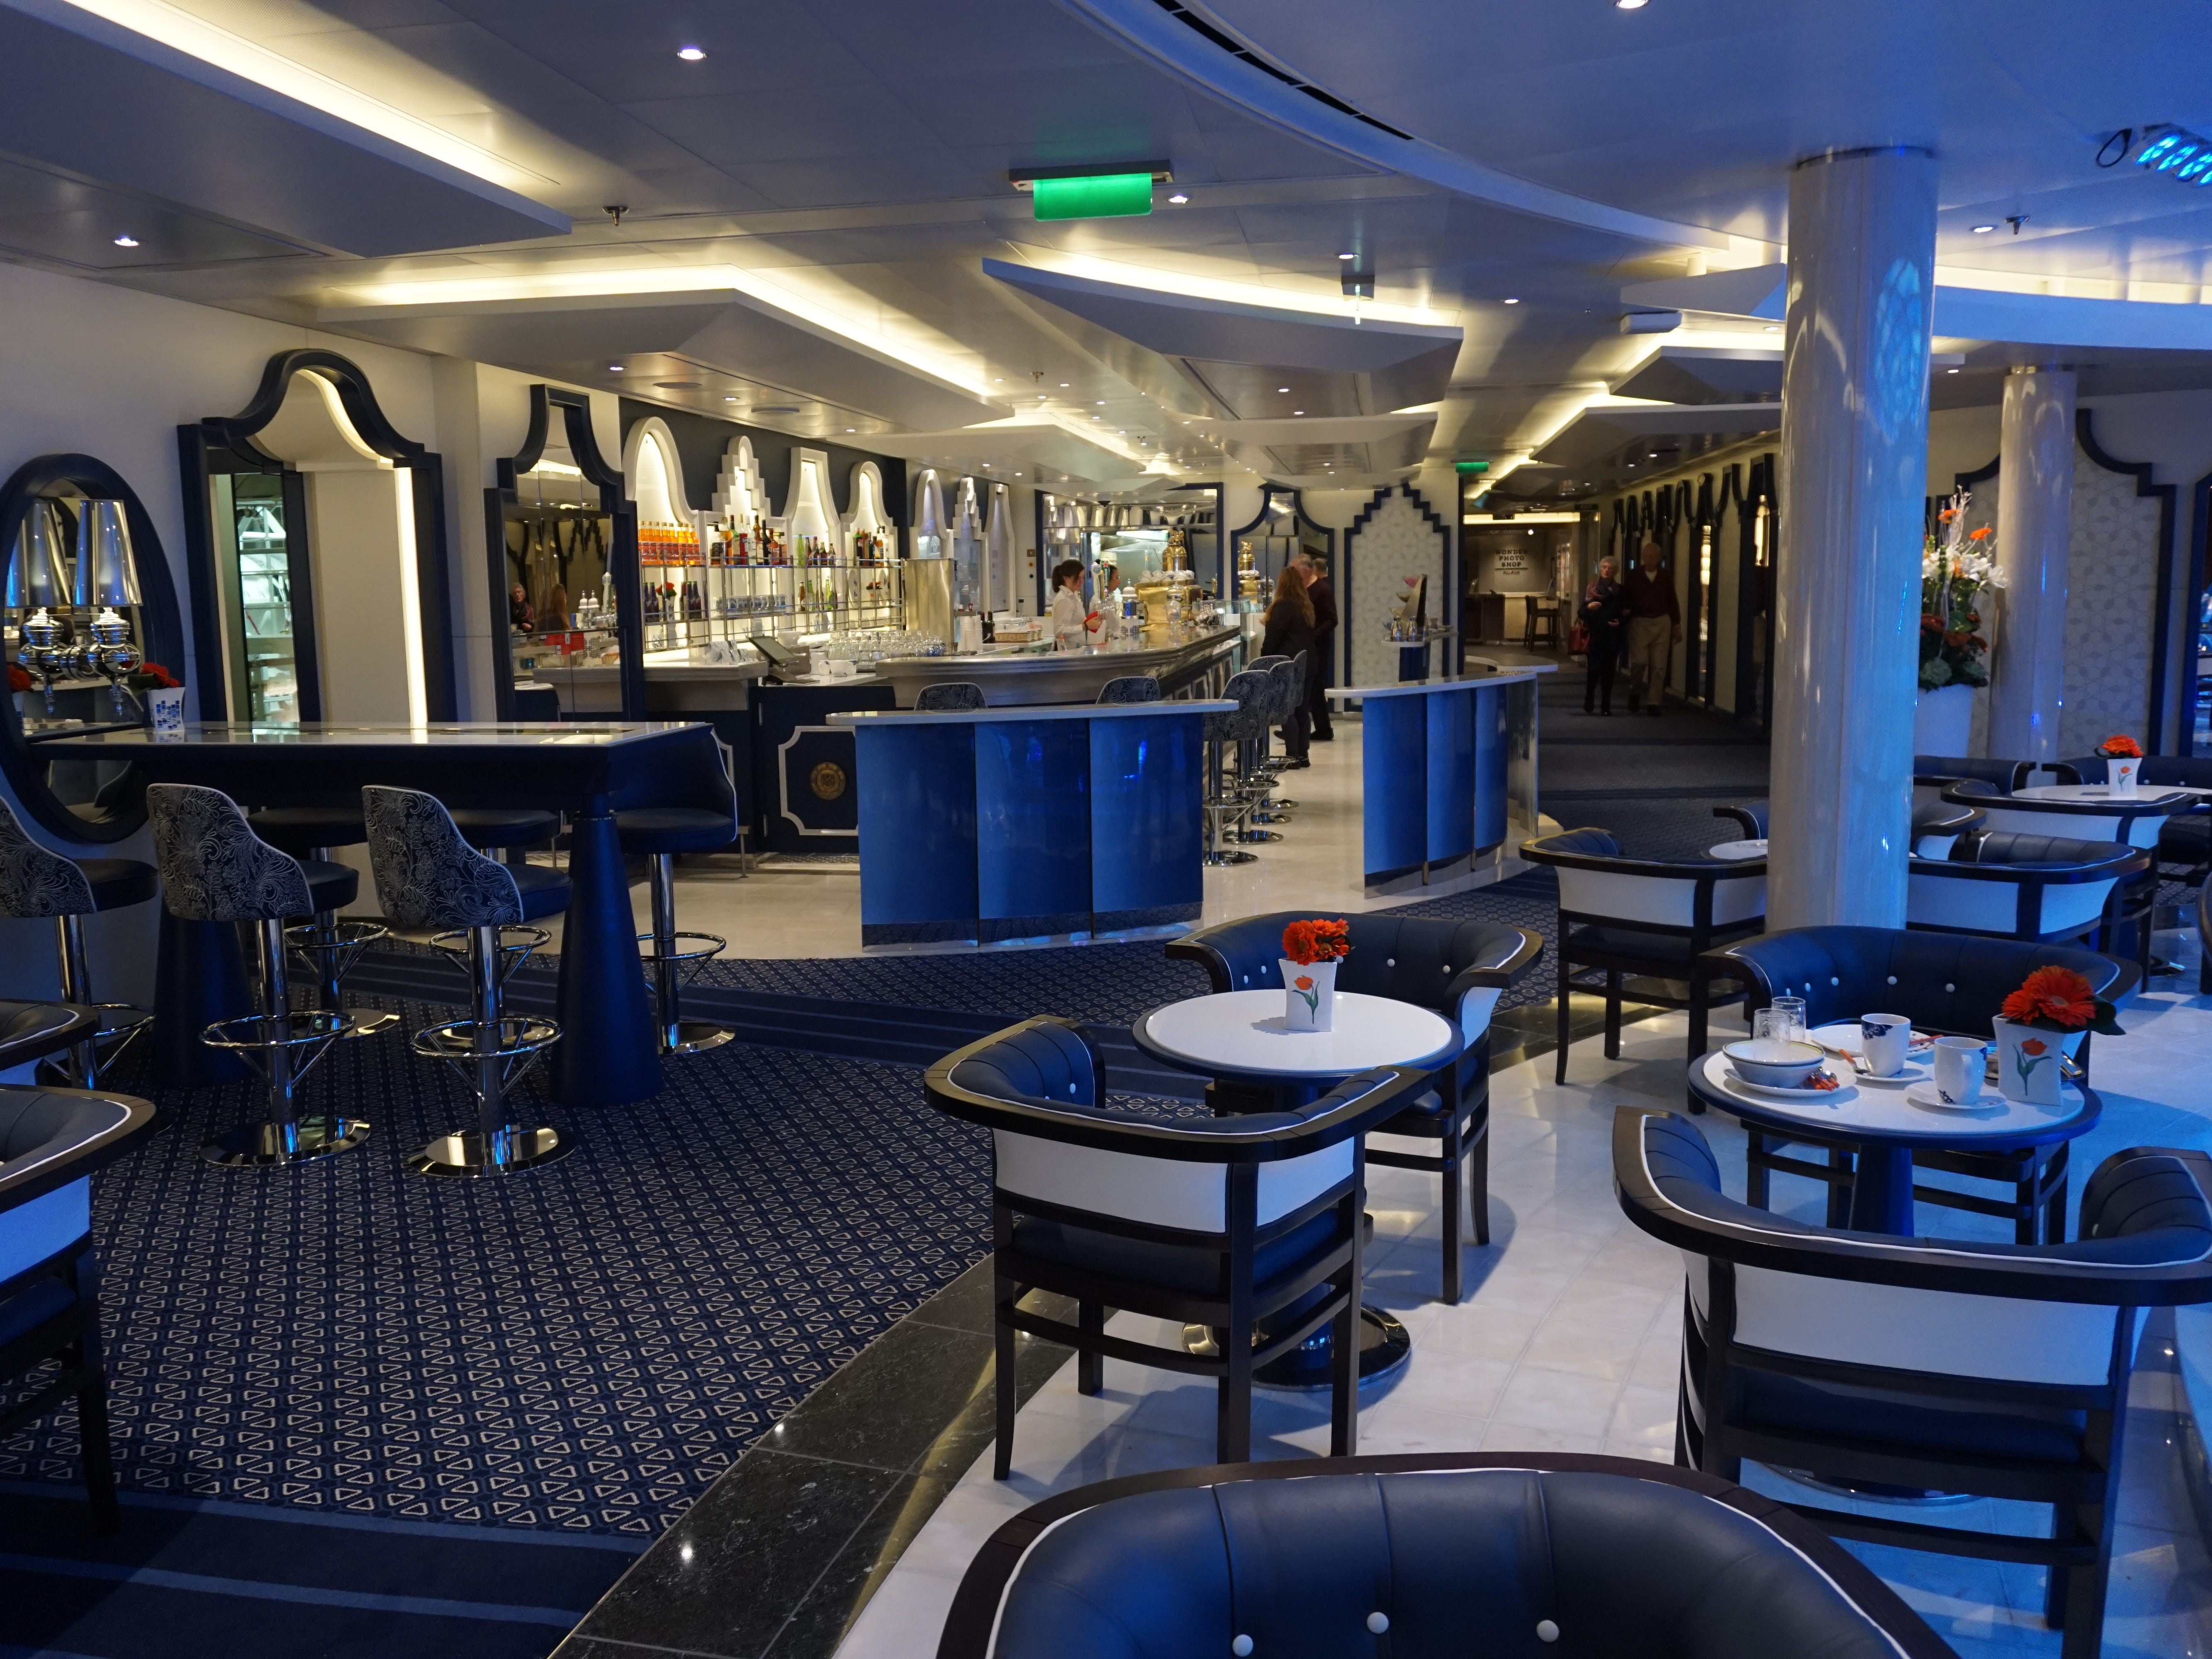 The Grand Dutch Cafe is a specialty coffee shop with Dutch-inspired treats for sale overlooking the starboard side of the Atrium on Deck 3.